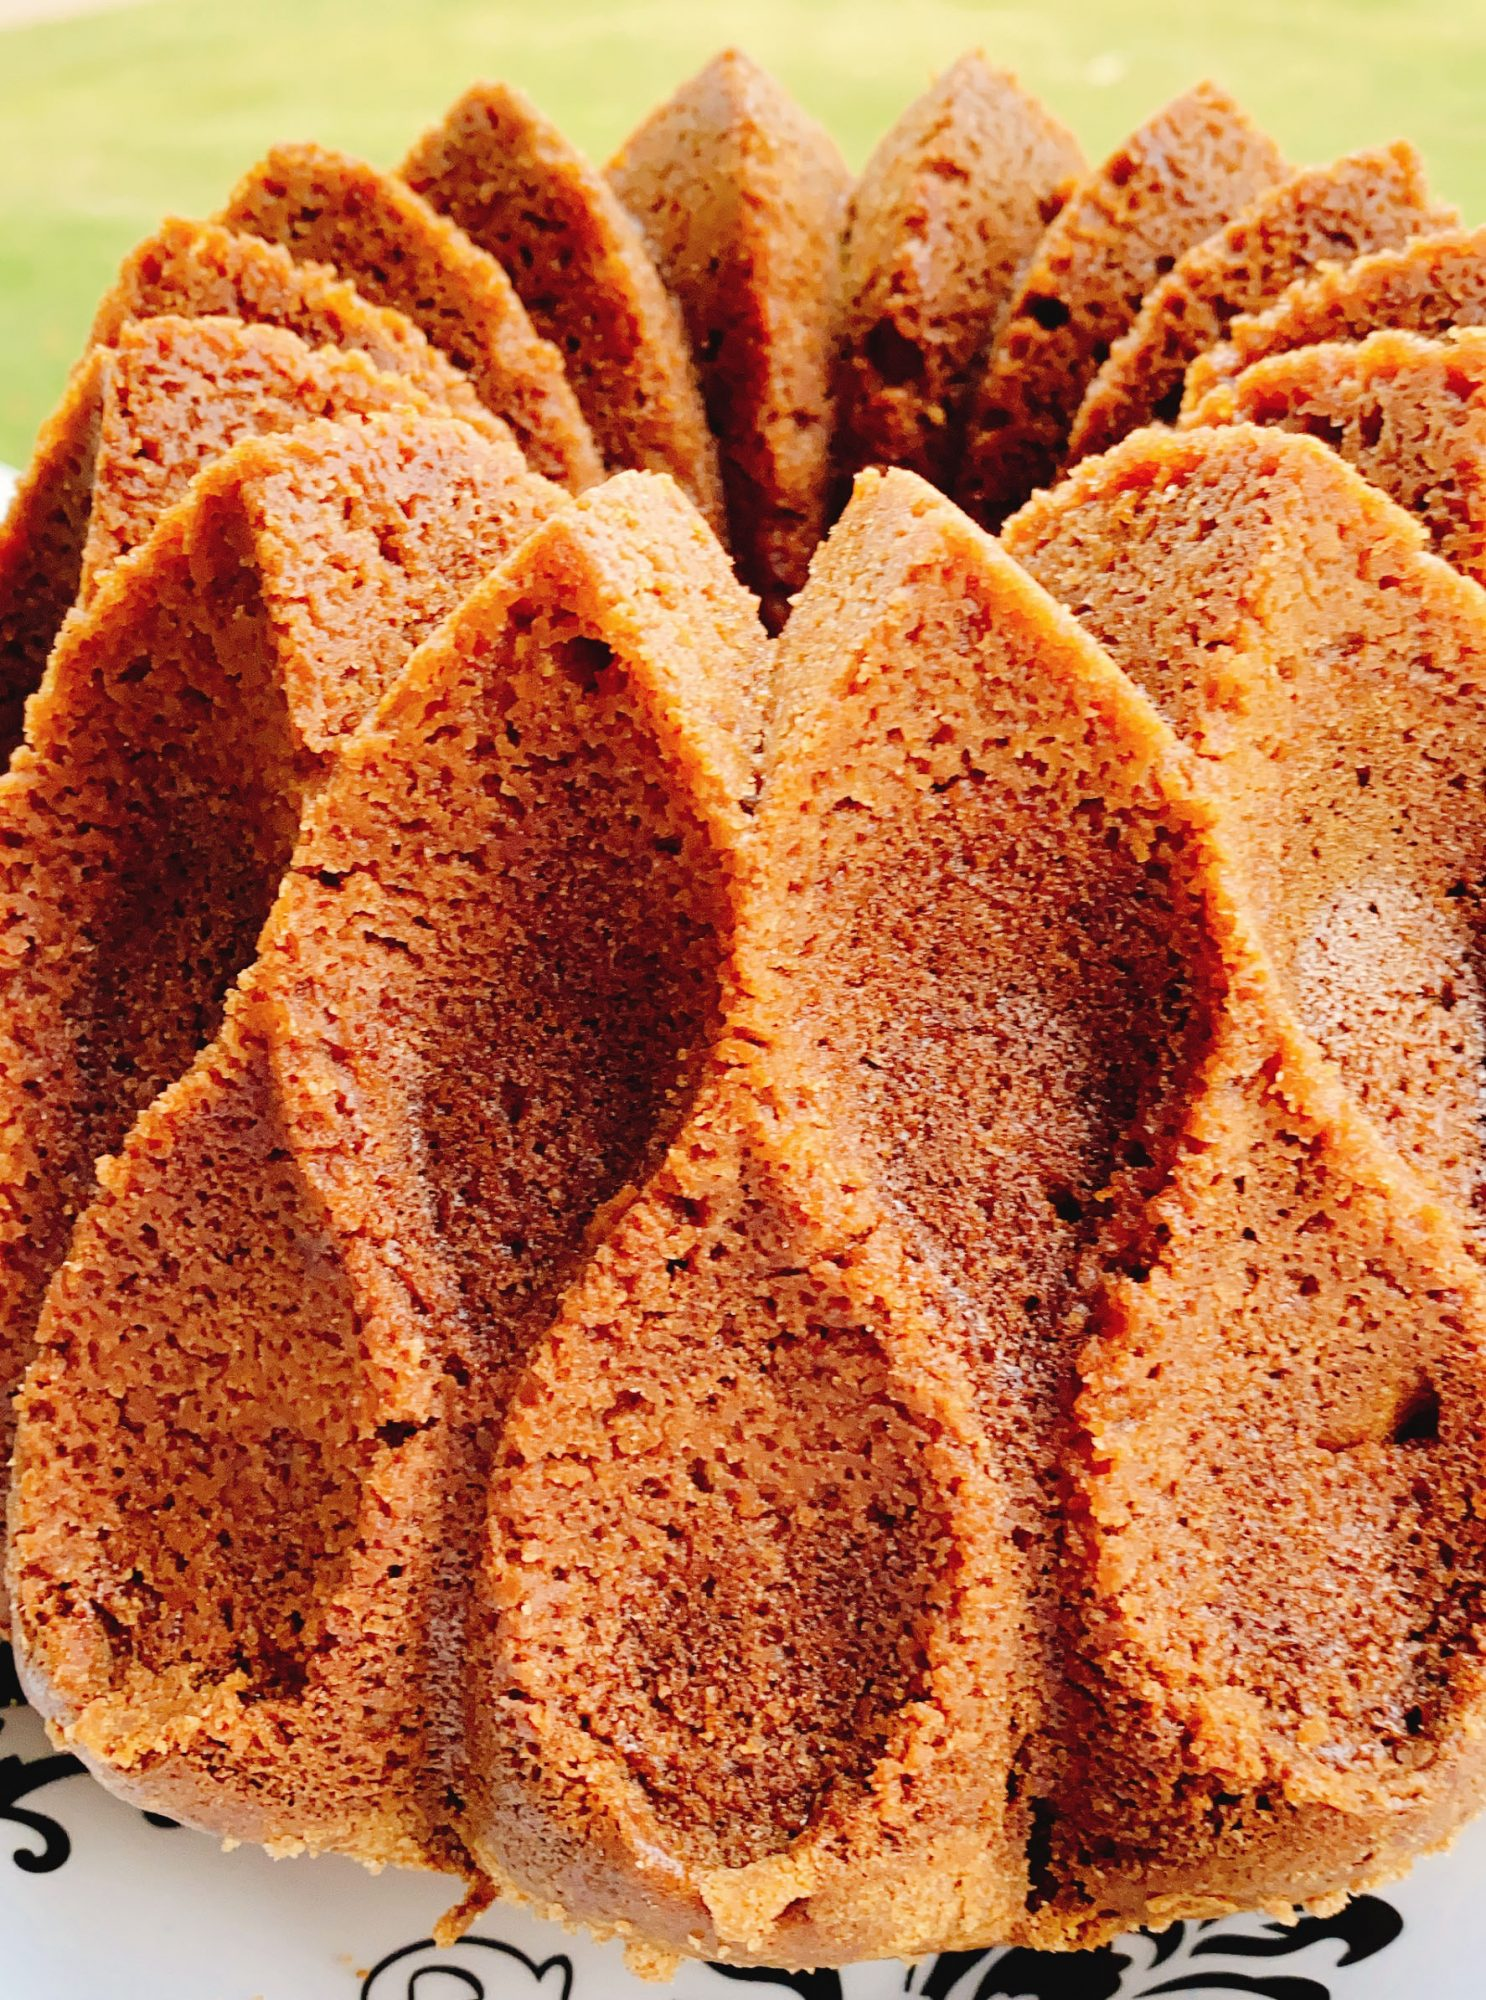 closeup of a cake baked in a decorative tube pan